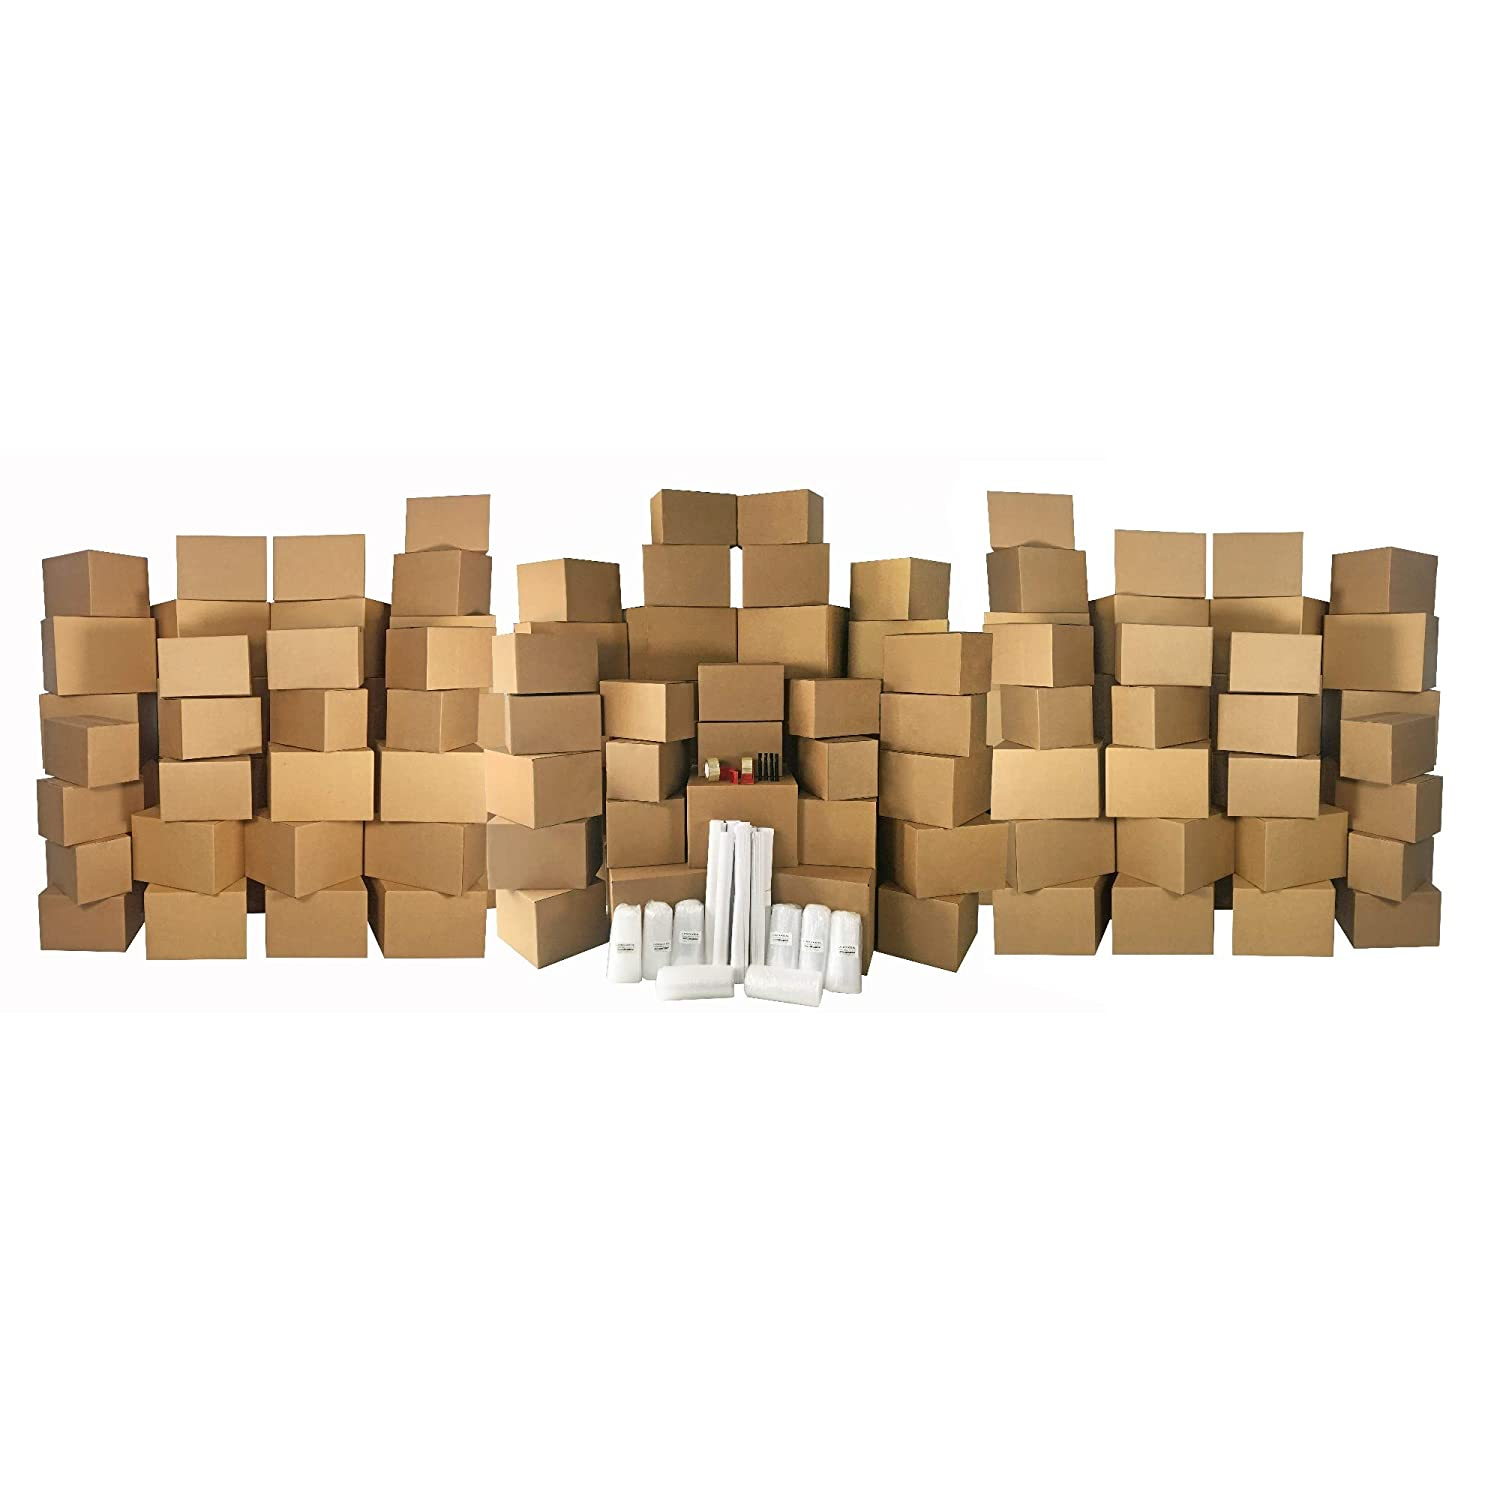 9 Room Basic Moving Kit 136 moving boxes /& $69 in supplies.